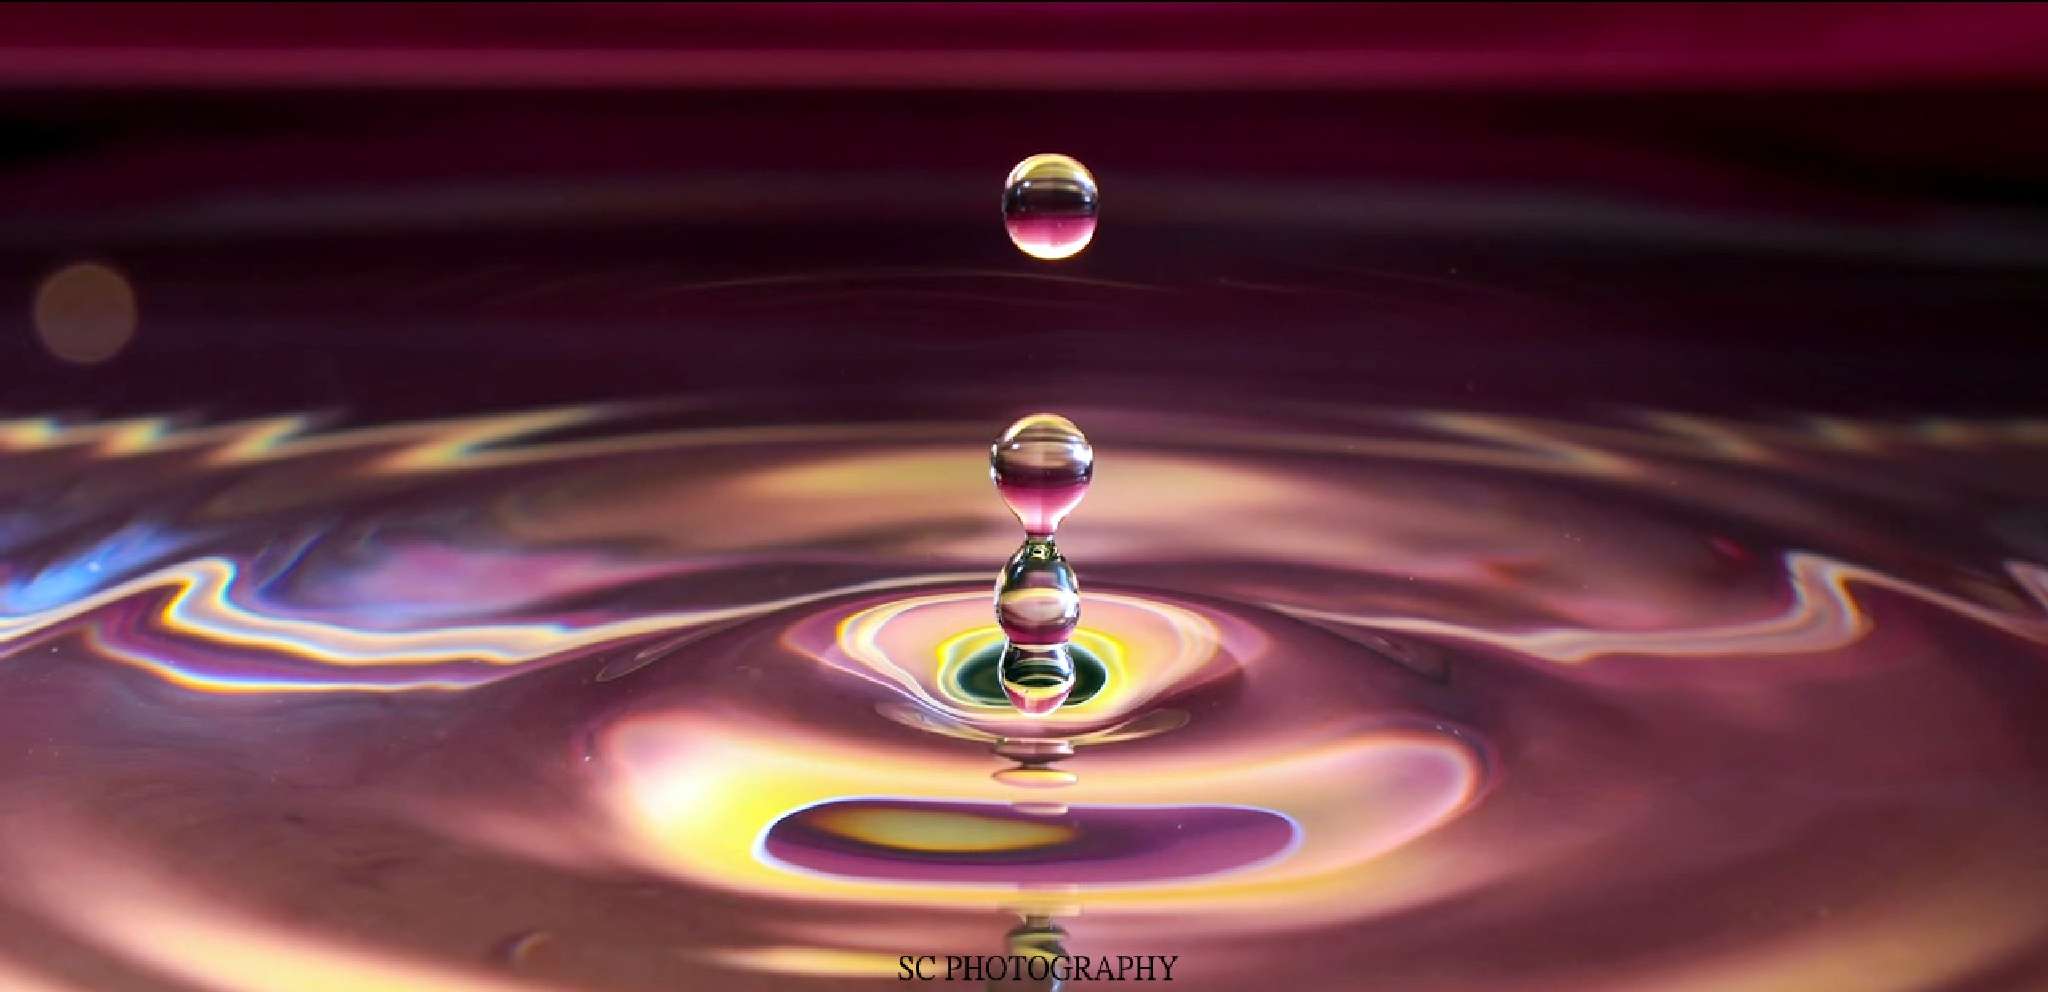 DROPS by S.C PHOTOGRAPHY